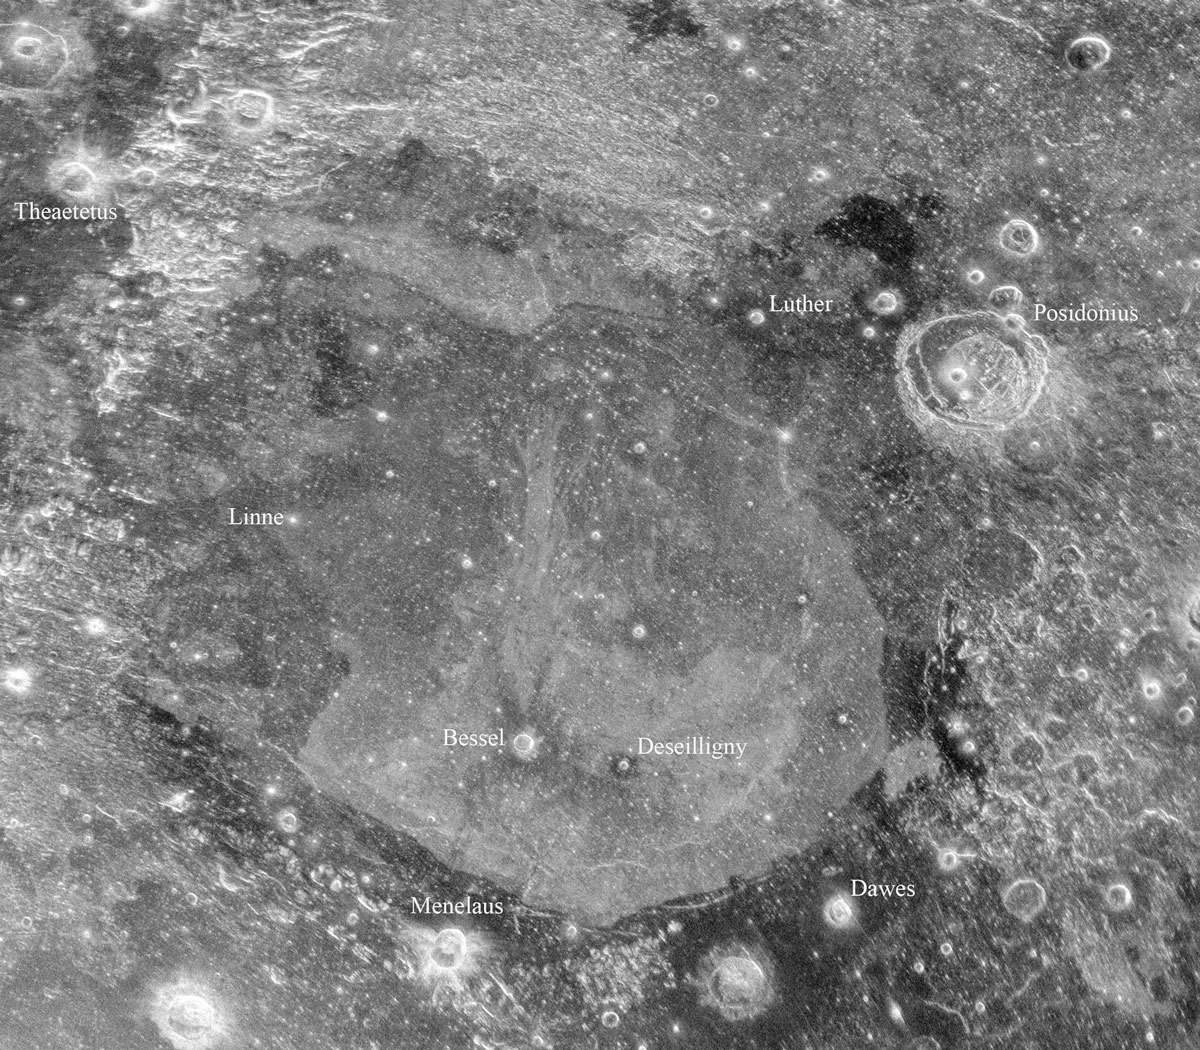 Radio Dishes Peer Beneath Moon's Surface (Images)